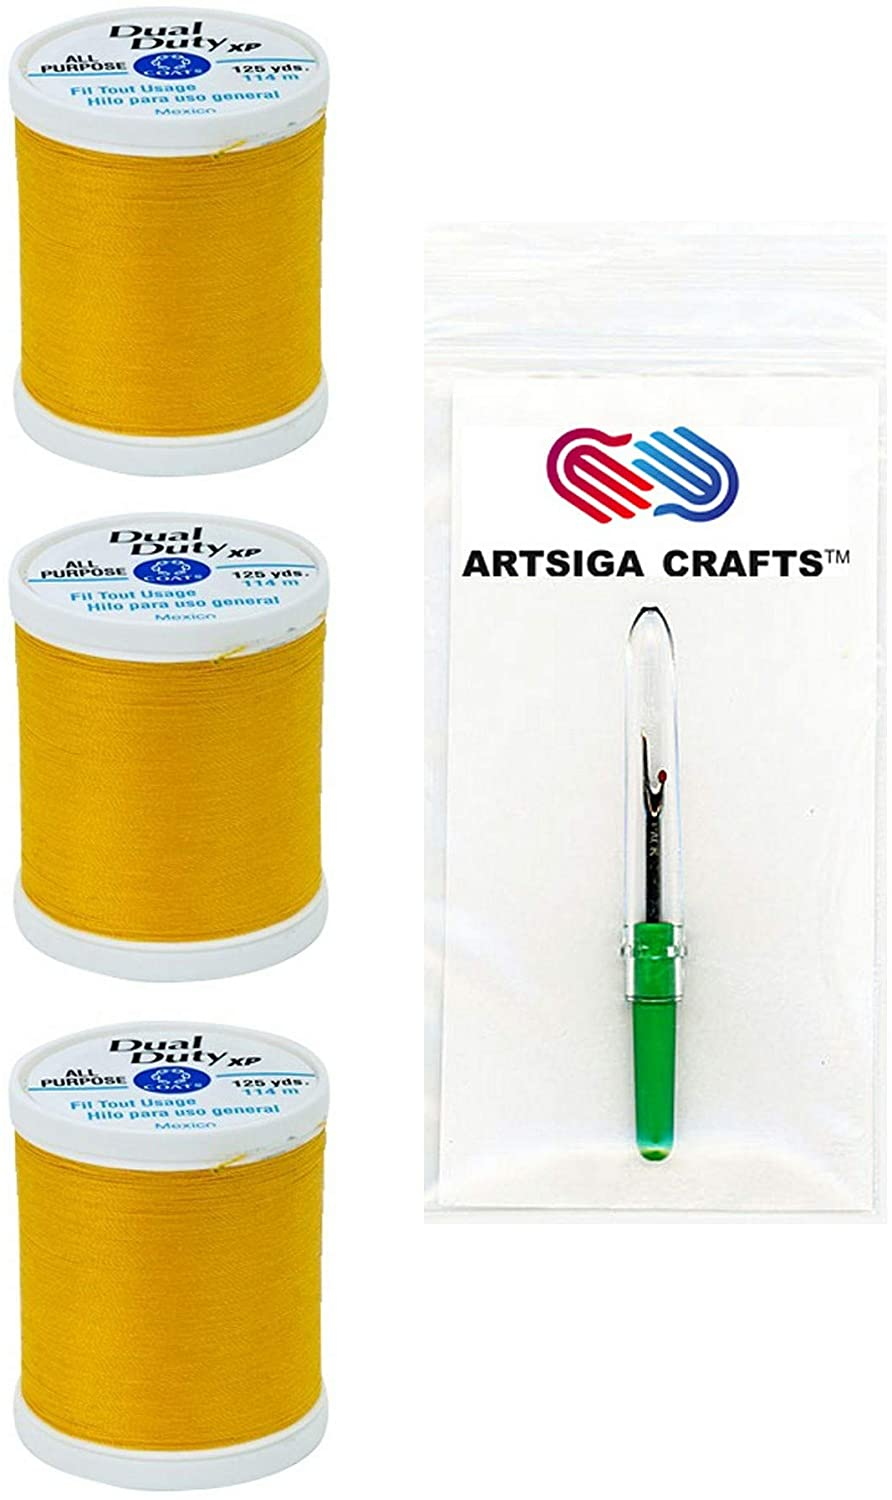 Coats & Clark Sewing Thread Dual Duty XP General Purpose Poly Thread 125 Yards (3-Pack) Bright Gold Bundle with 1 Artsiga Crafts Seam Ripper S900-9274-3P